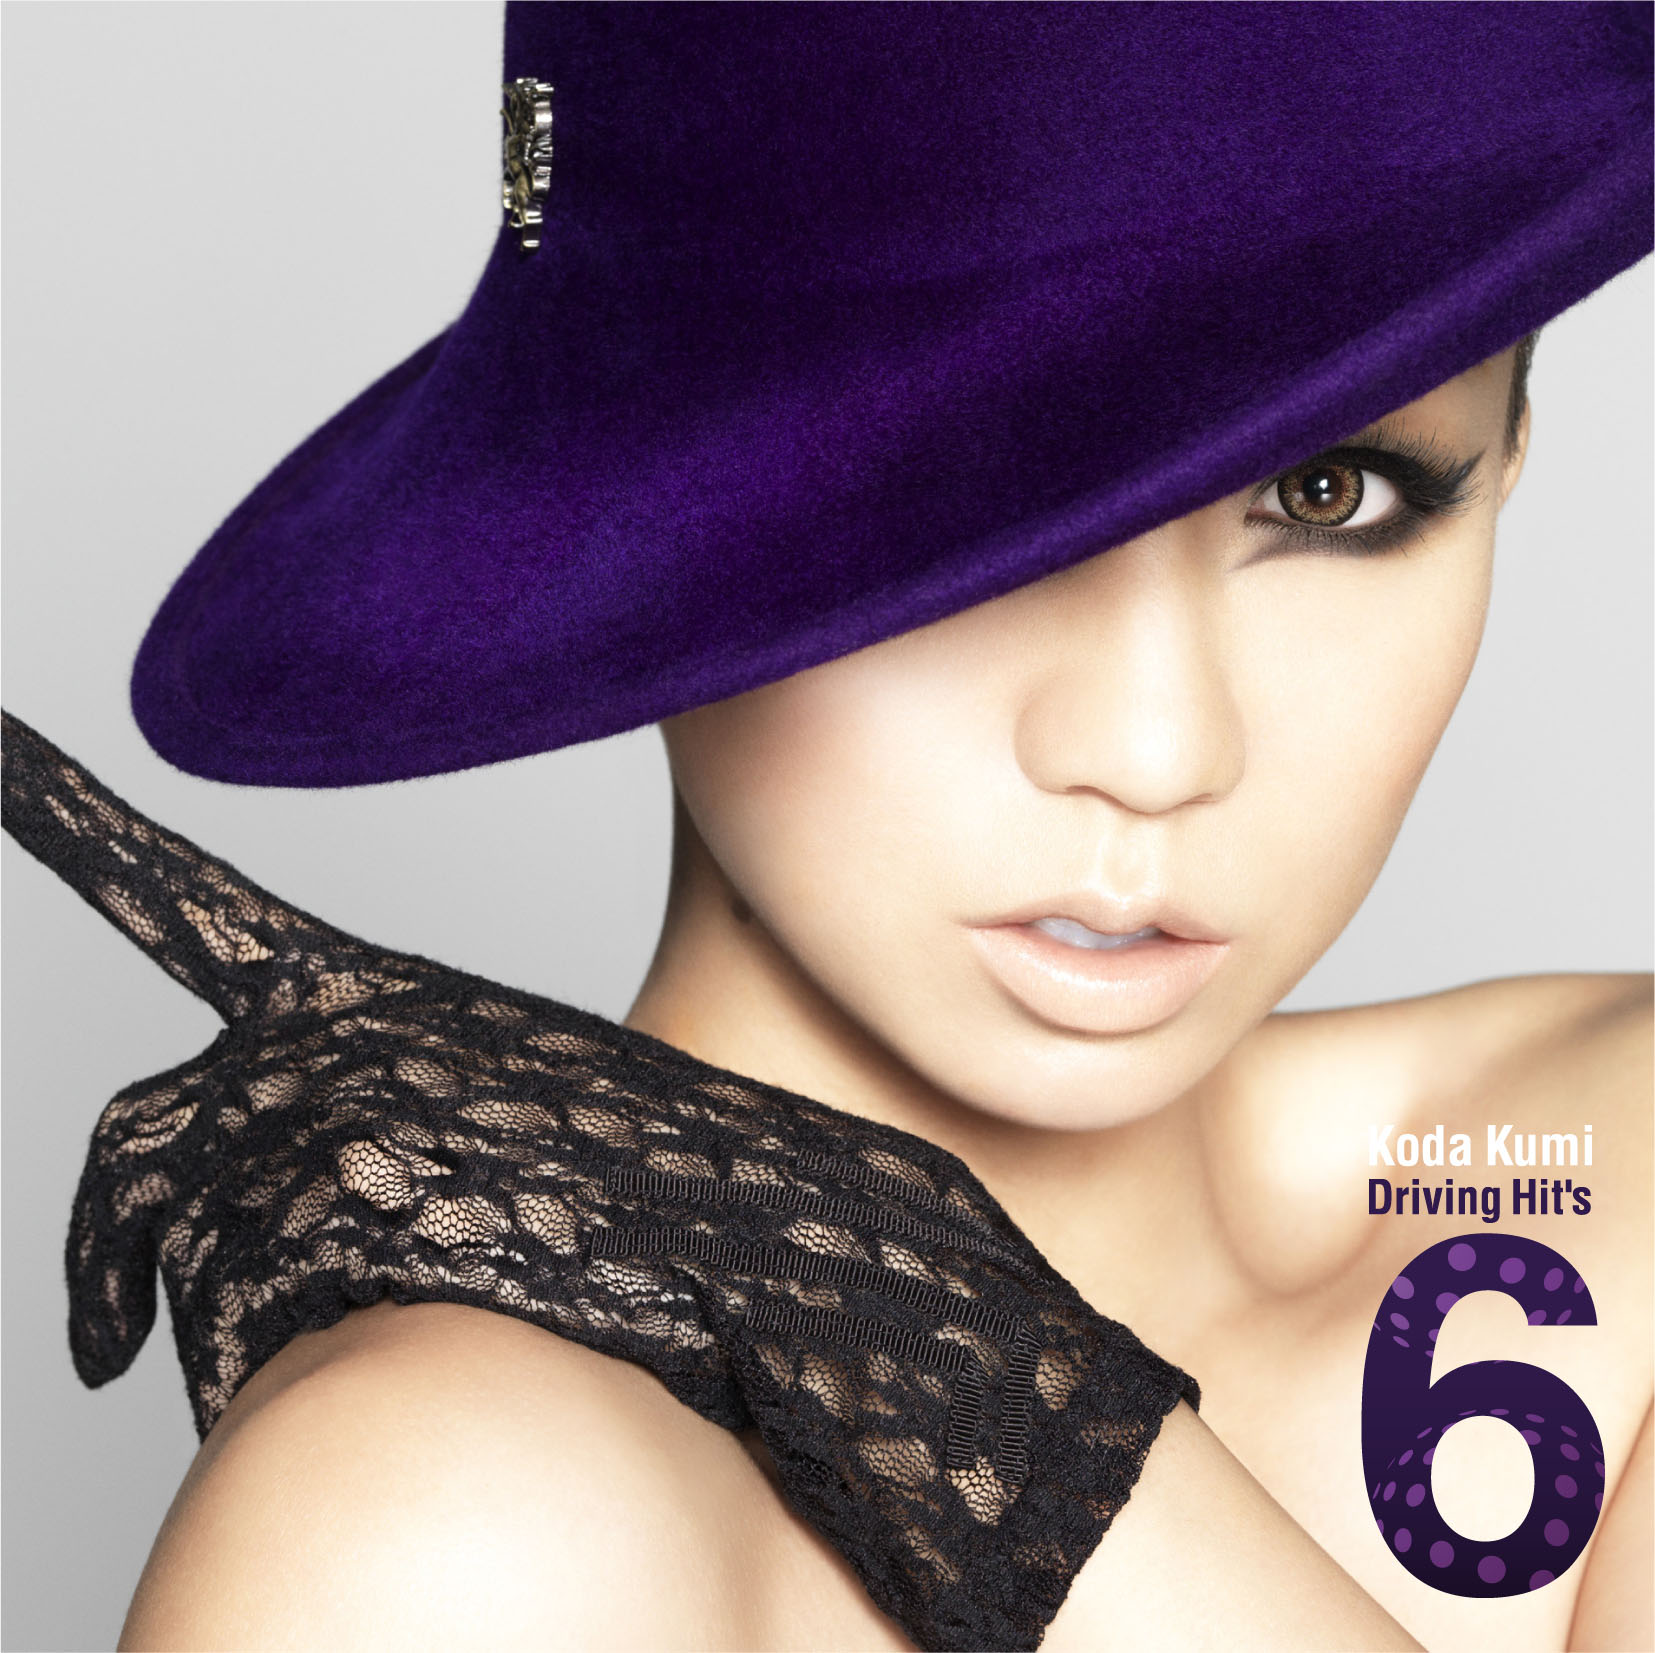 リミックスアルバム『Koda Kumi Driving Hit's 6』 【CD+DVD】